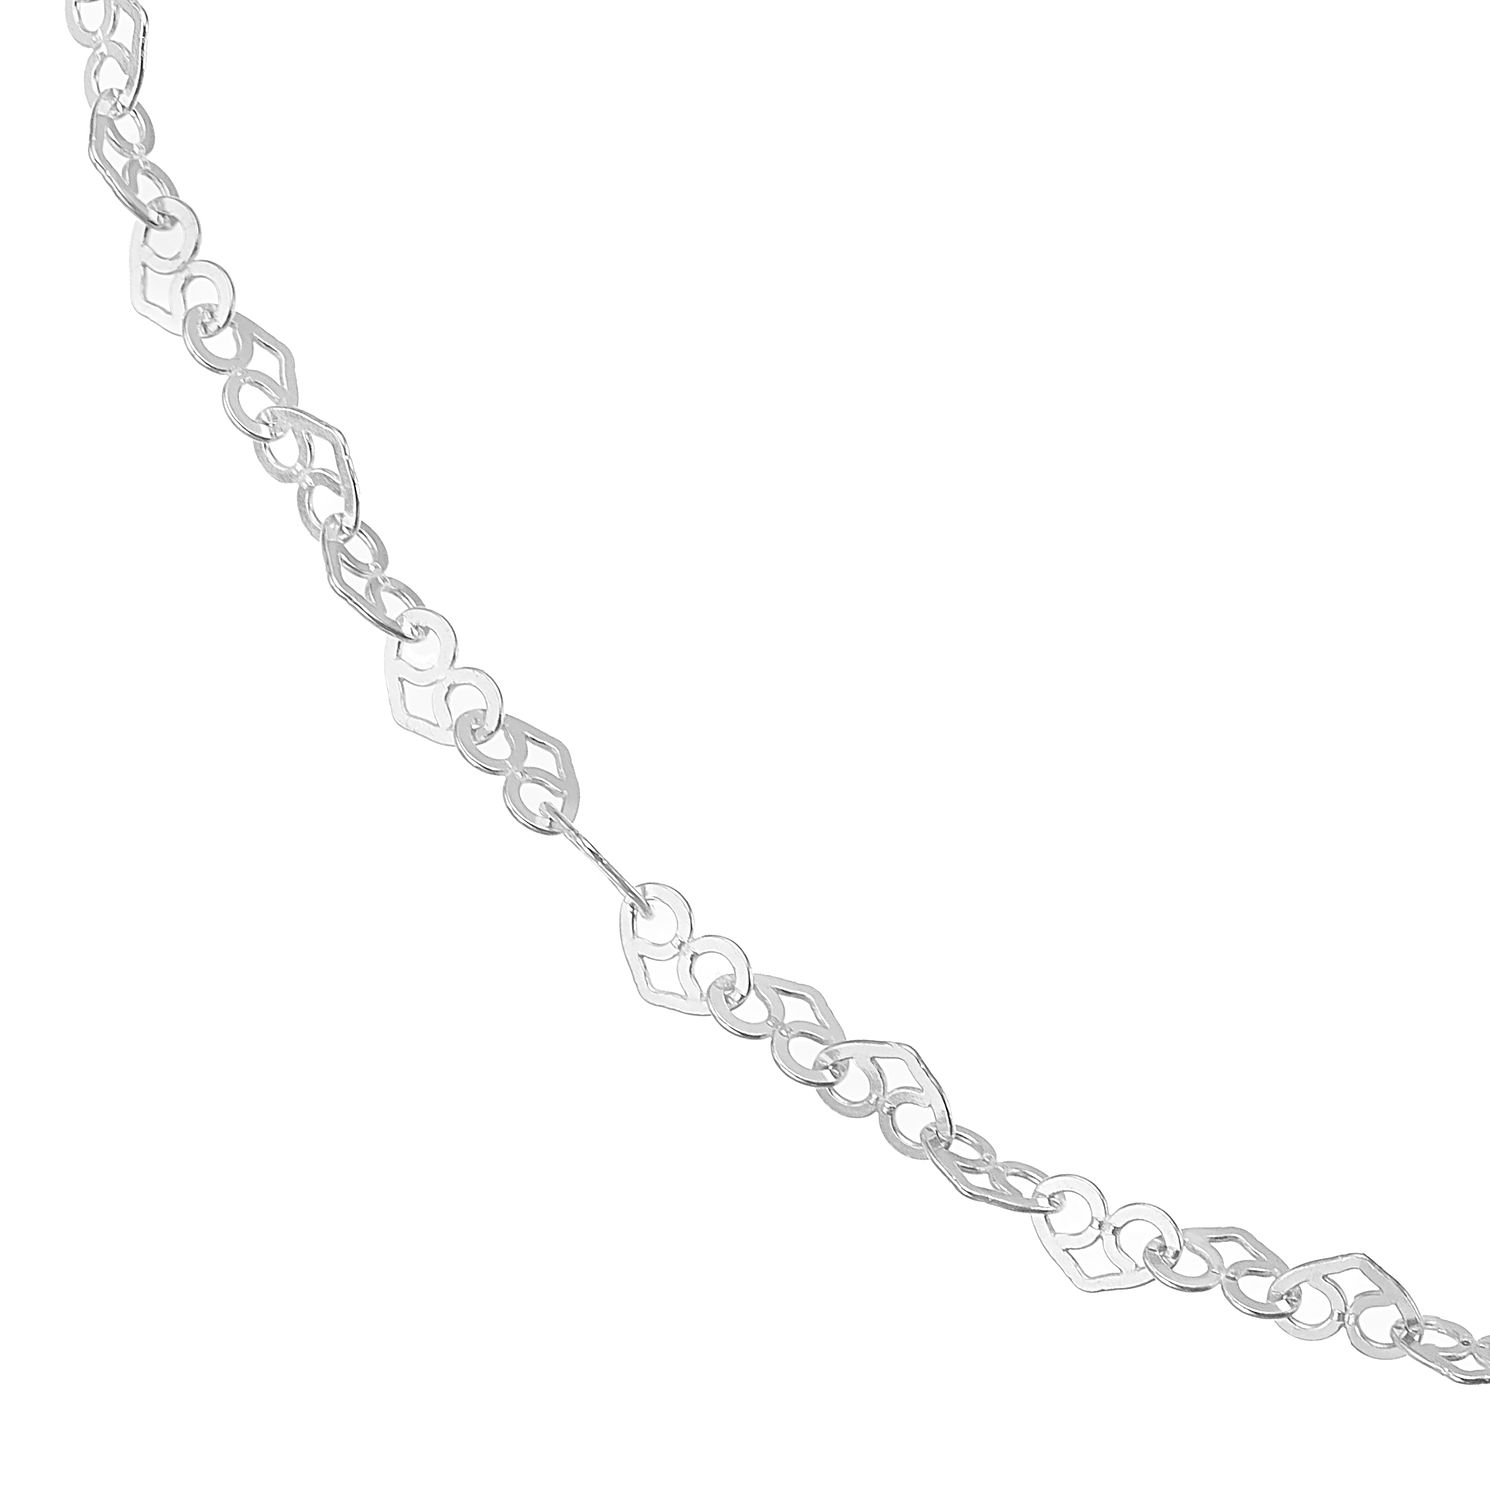 Silver Heart Link Chain Necklace 18 inches - Product number 4819438